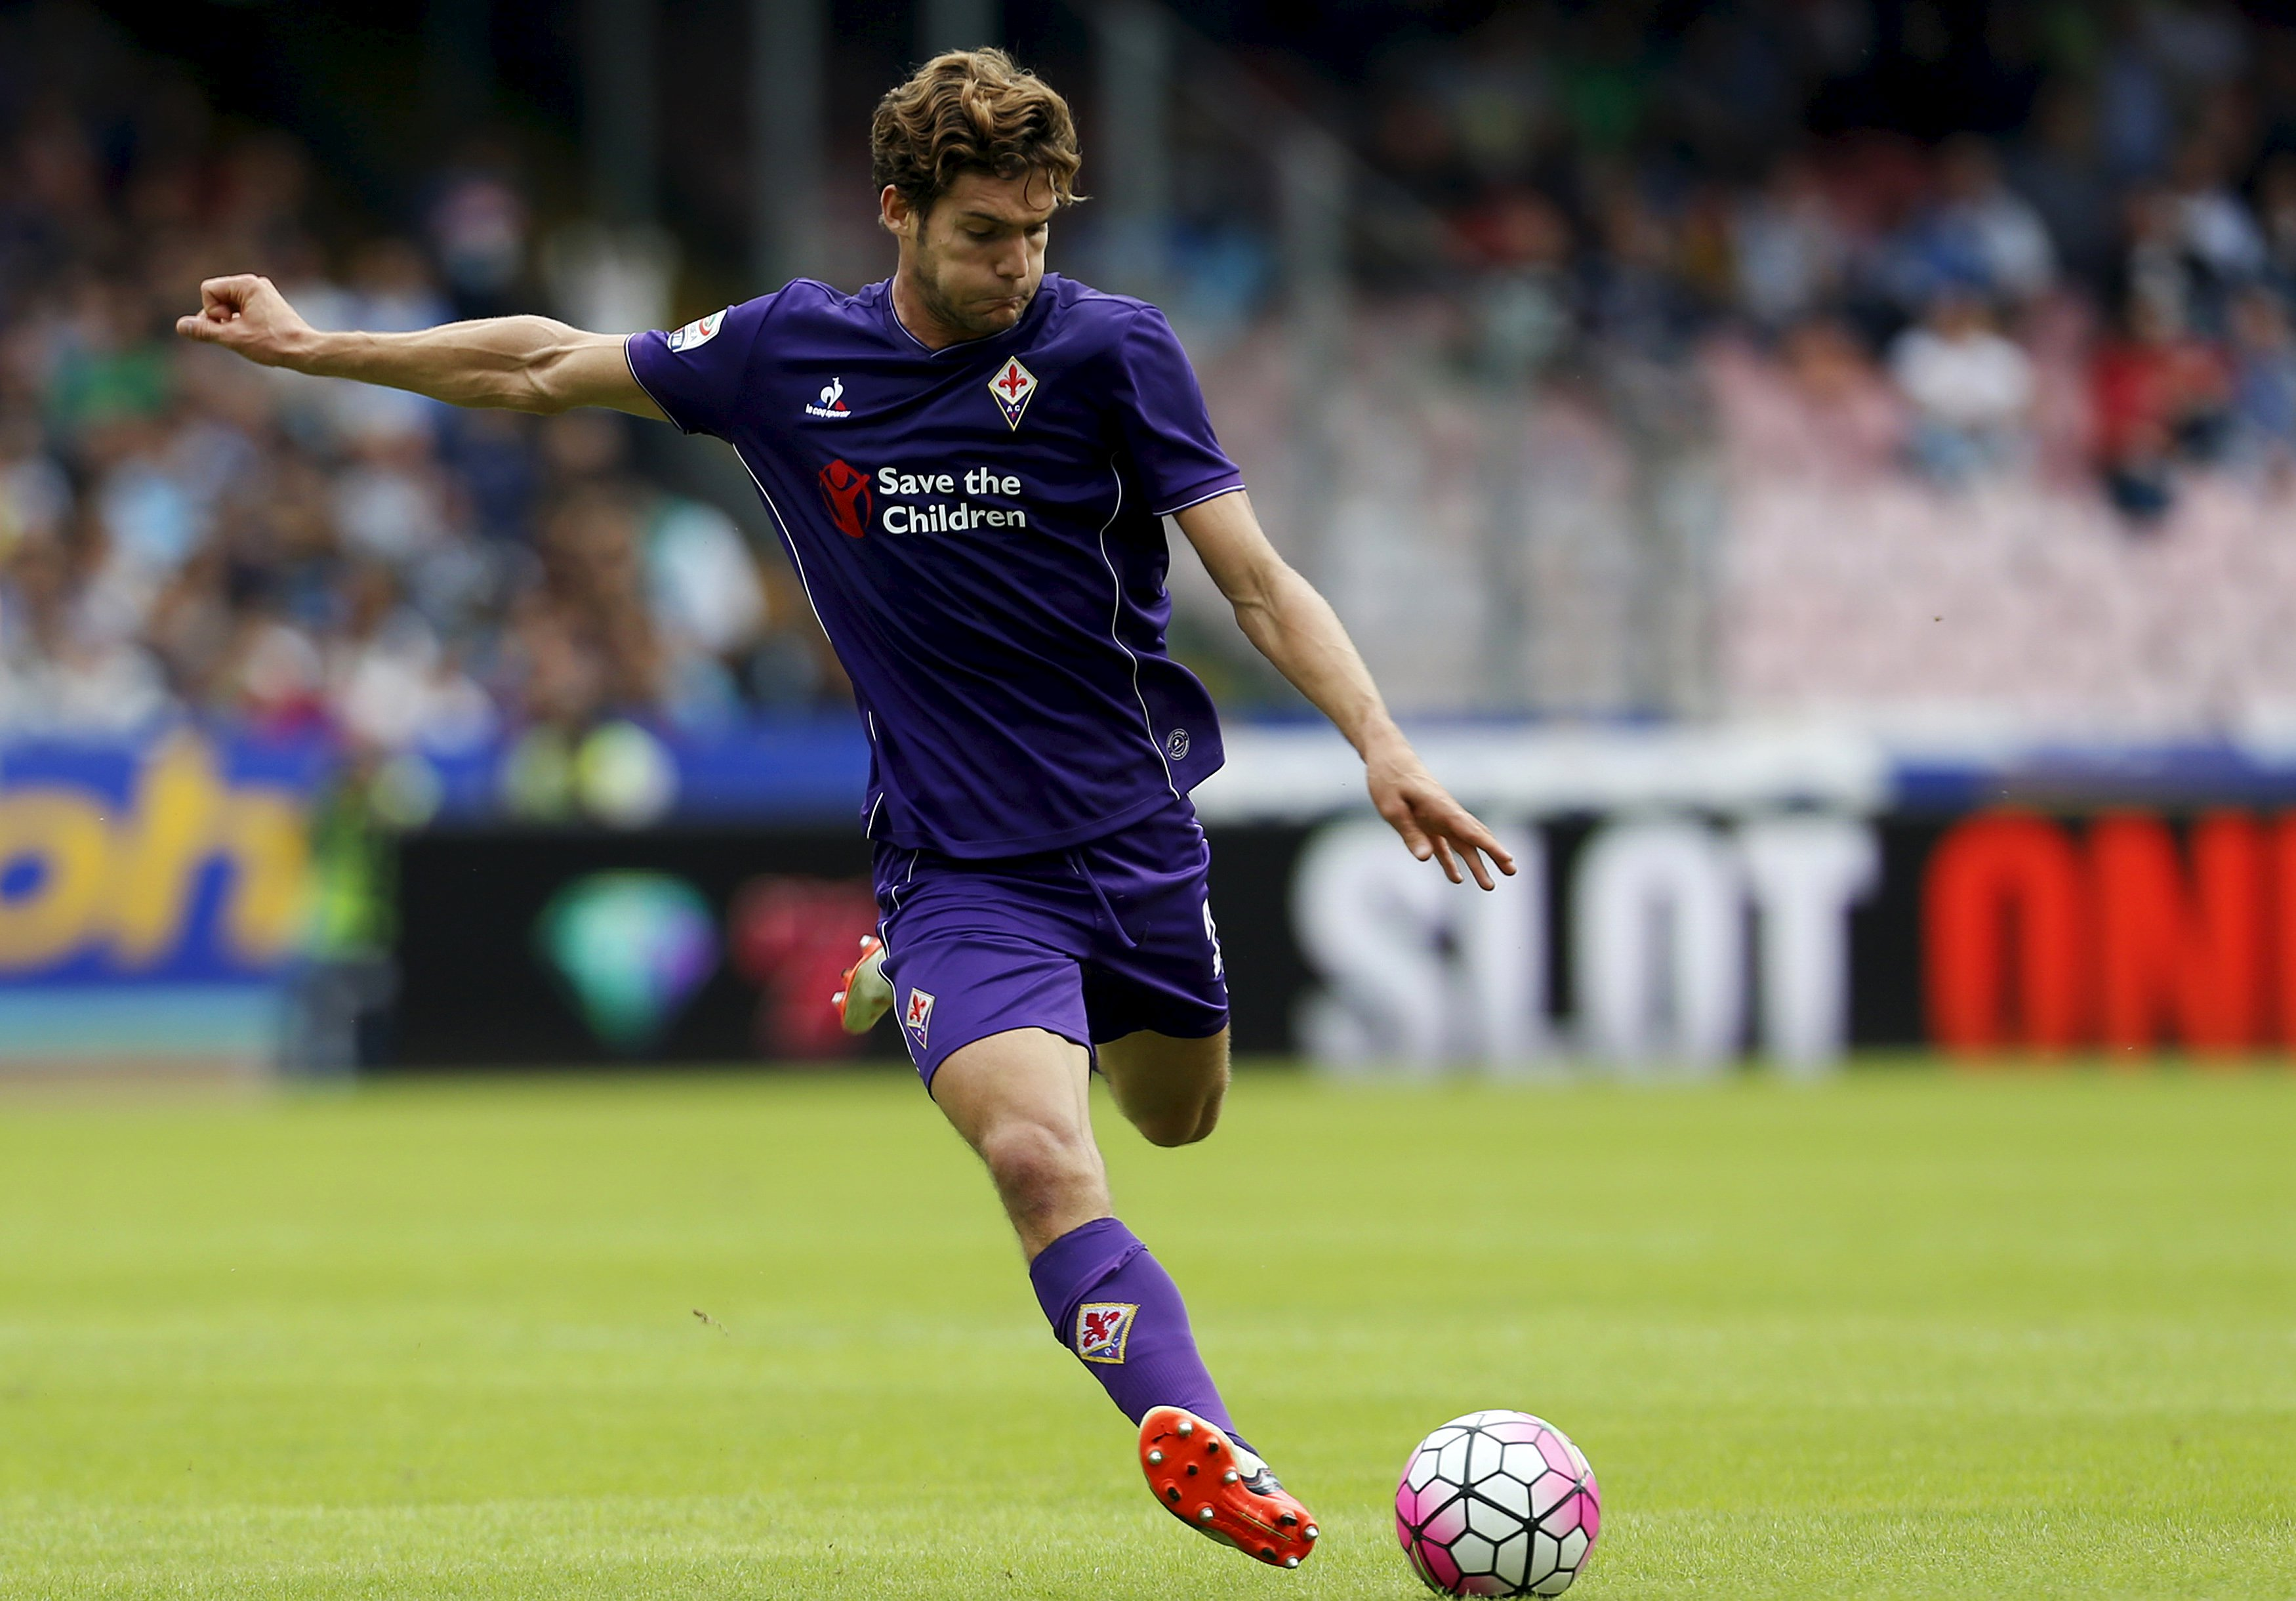 Fiorentina's Alonso shoots a ball during their Italian Serie A soccer match against Napoli in Naples